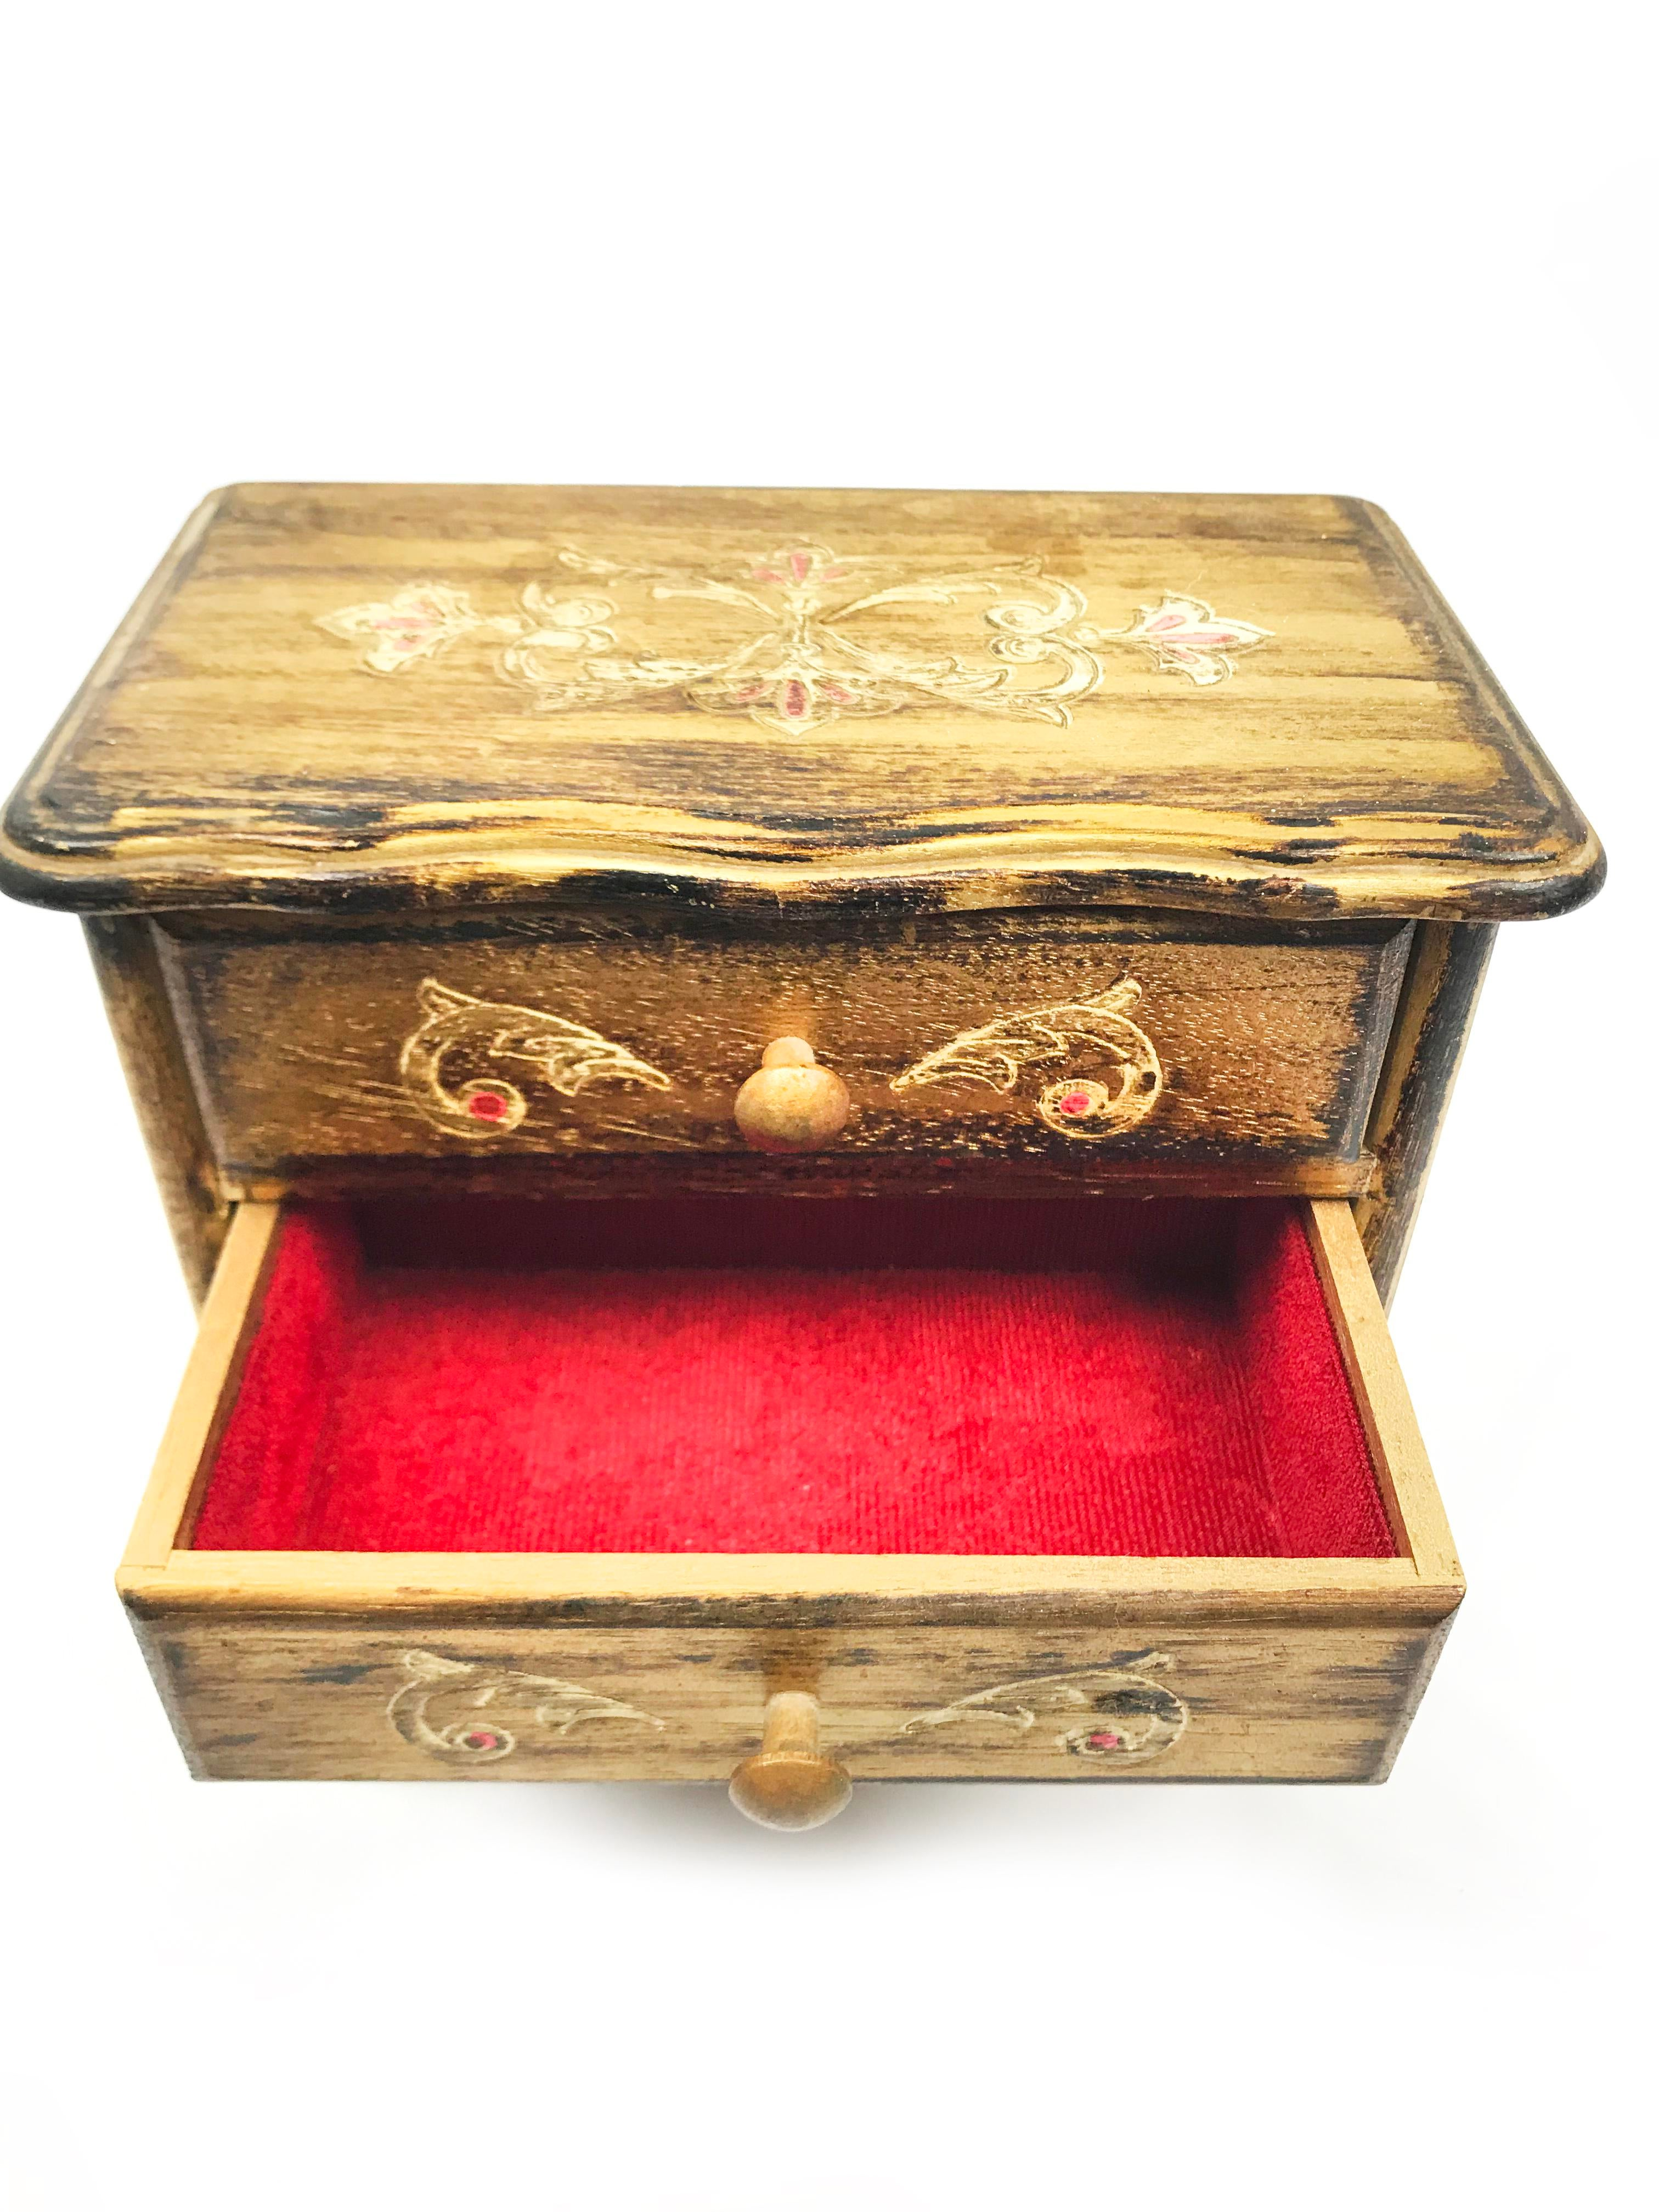 Vintage MidCentury Florentine Style Footed Wooden Jewelry Box